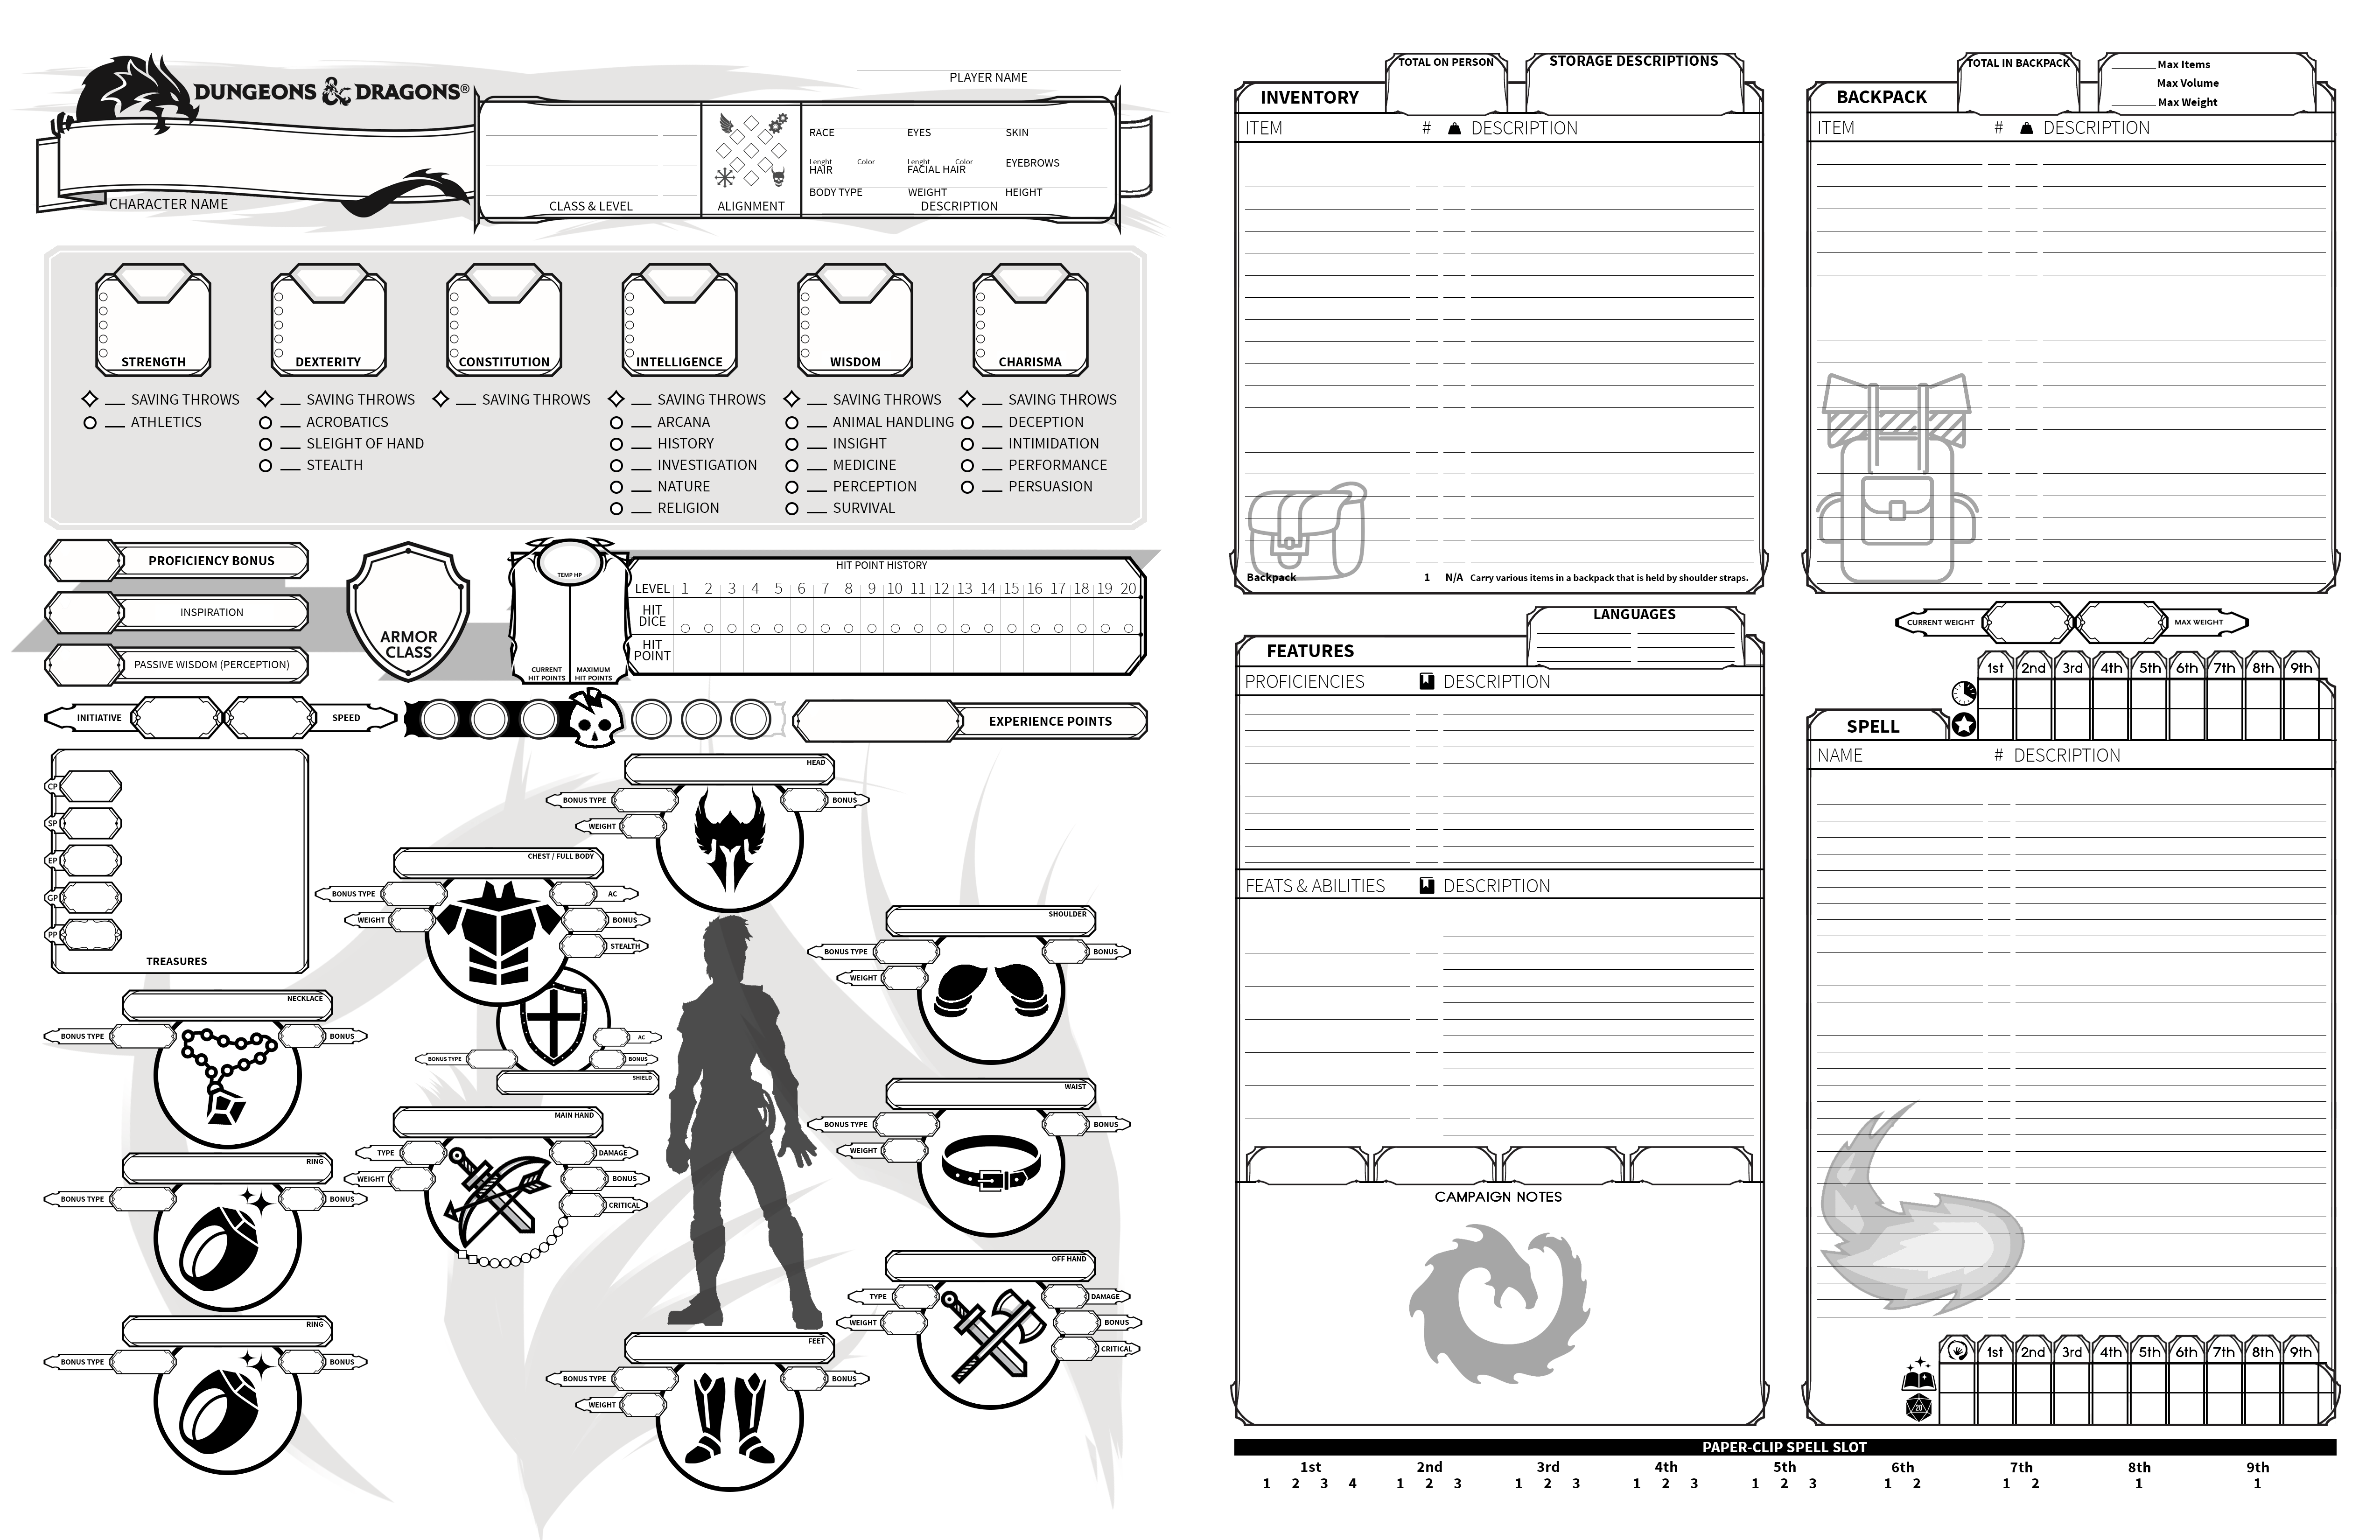 [OC] First final version of my Custom Character Sheet for